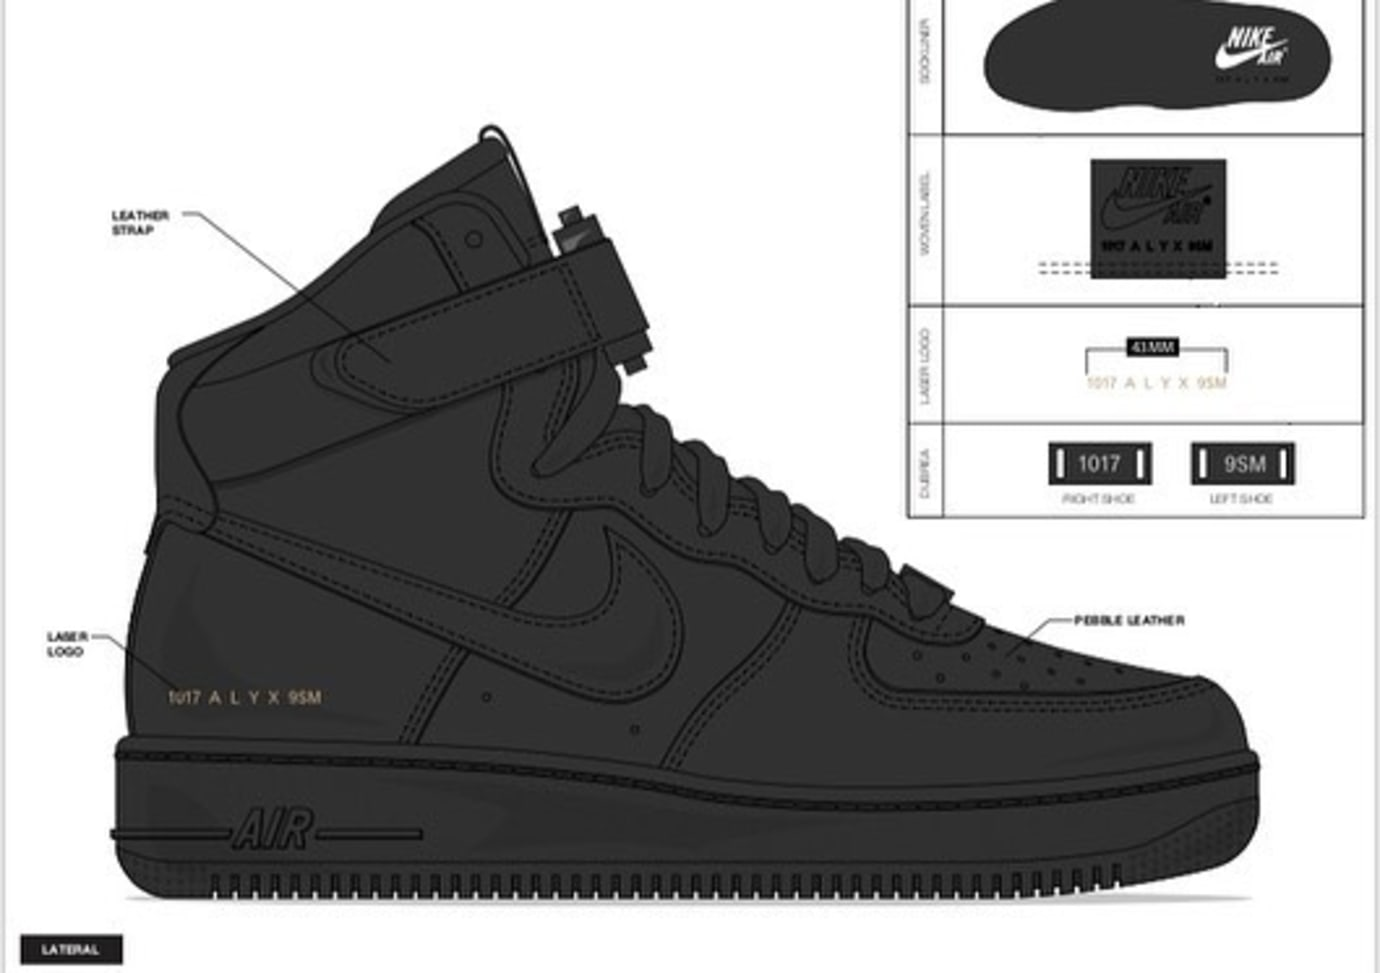 Alyx x Nike Air Force 1 'Triple Black'